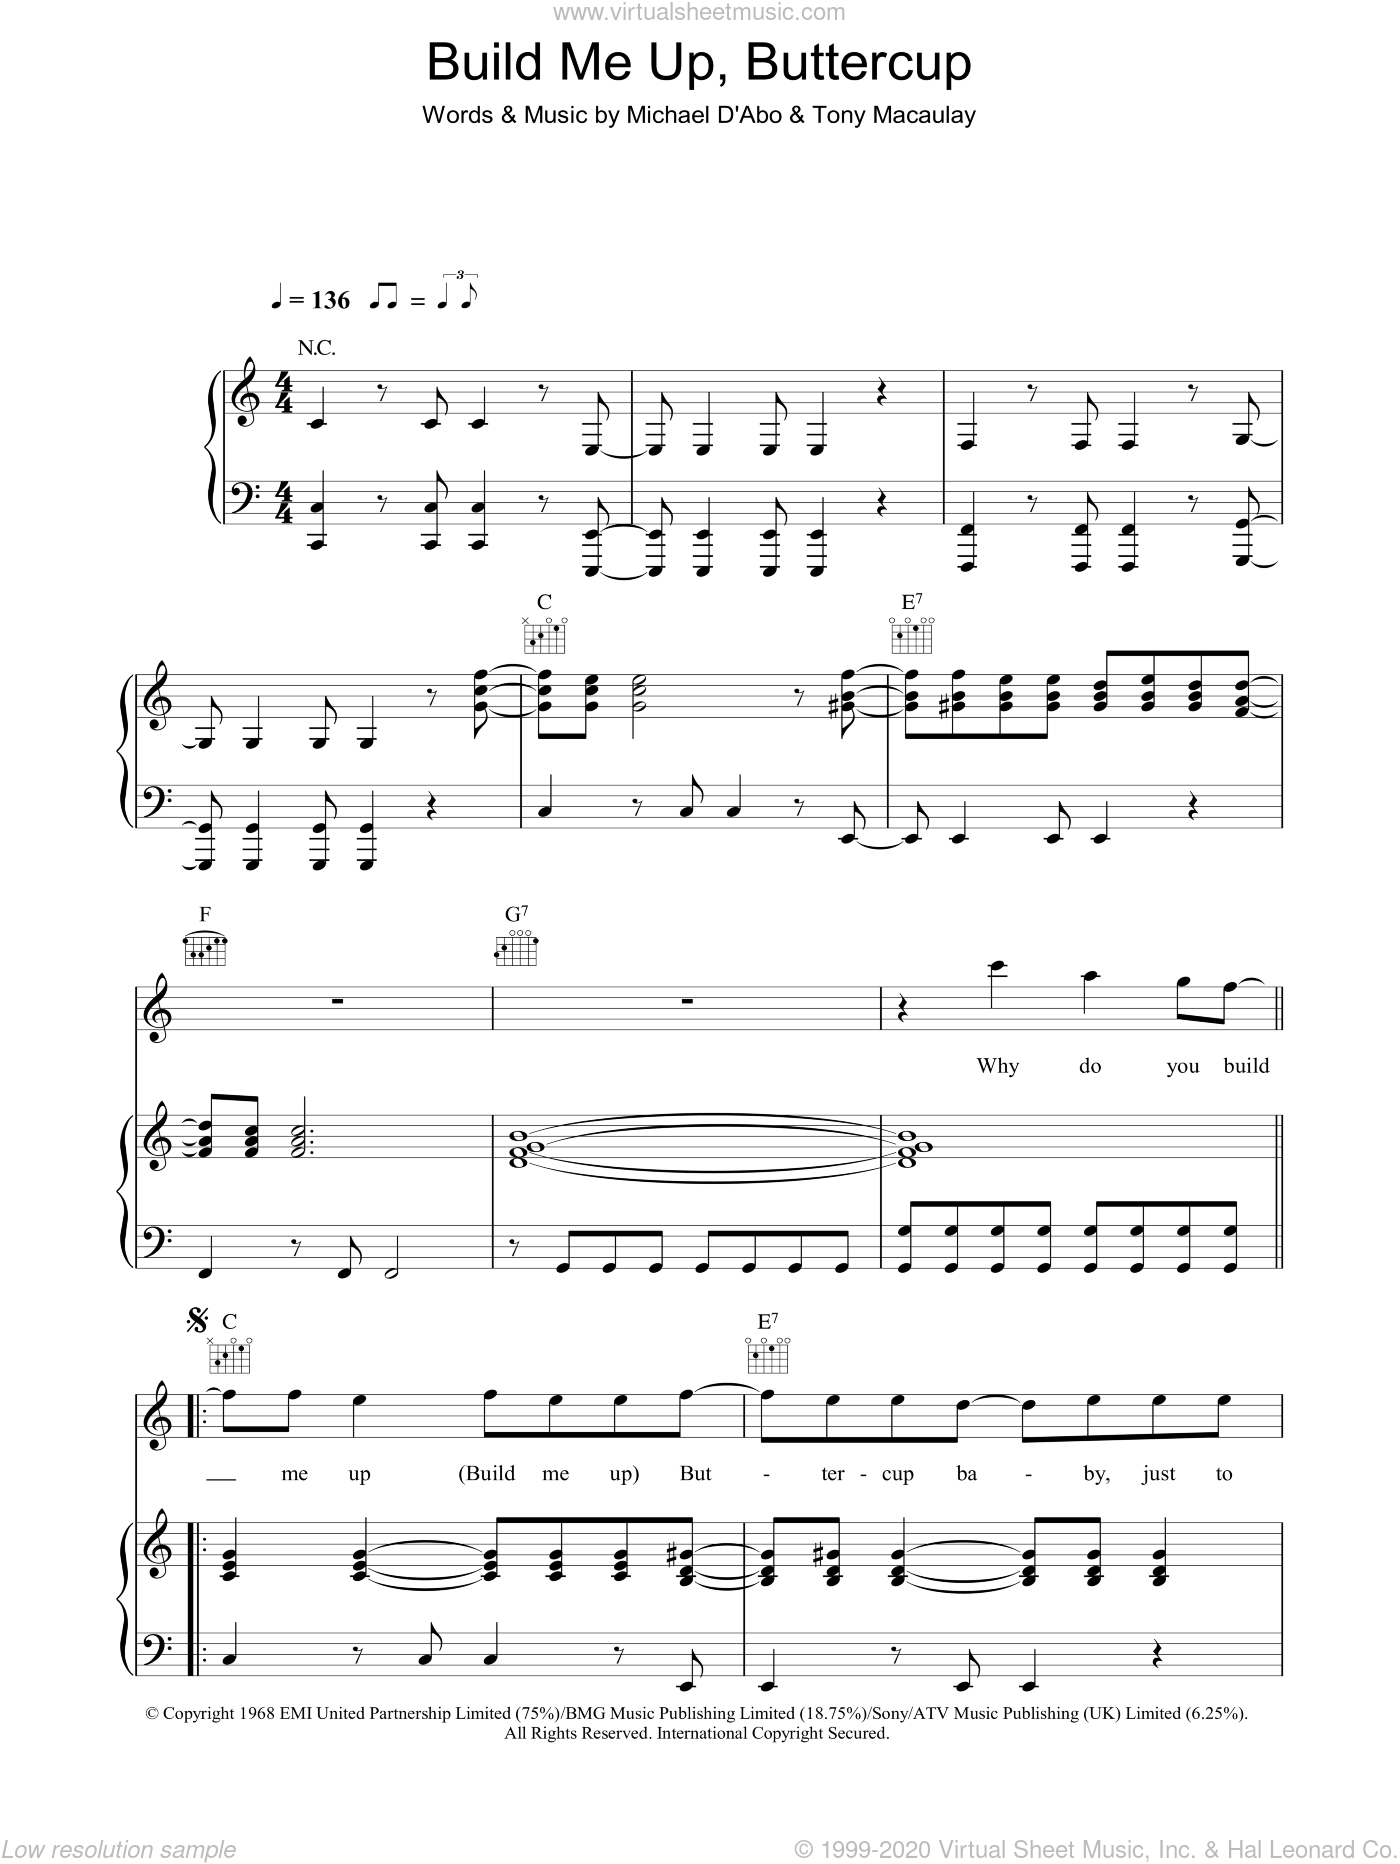 Build Me Up, Buttercup sheet music for voice, piano or guitar by Tony Macaulay and The Foundations. Score Image Preview.